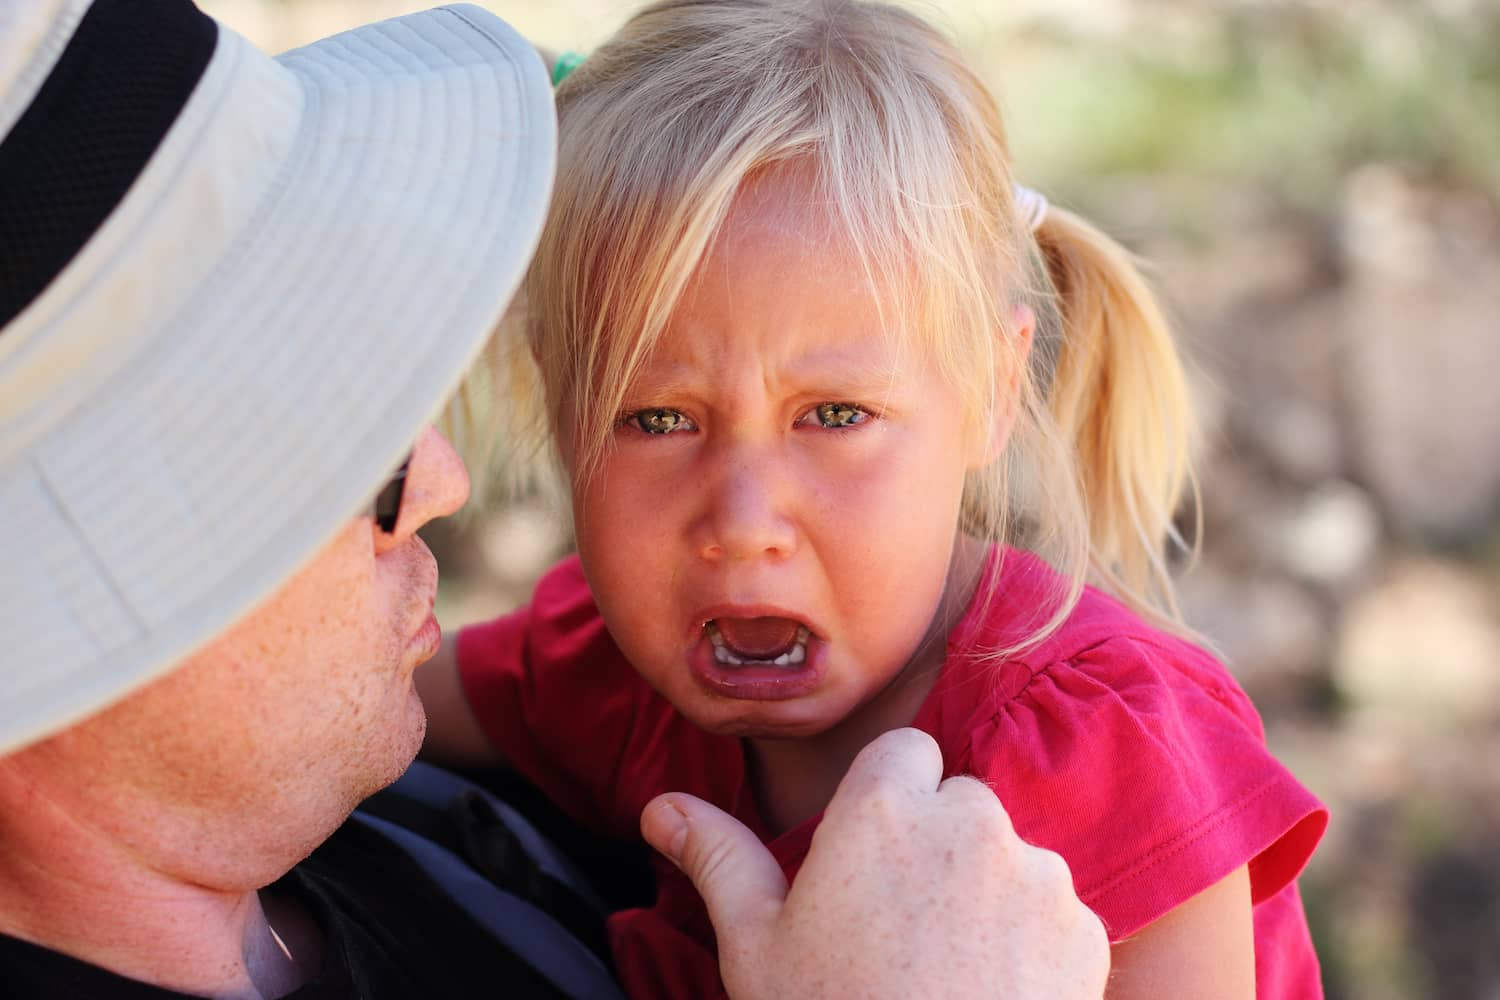 Child dental trauma